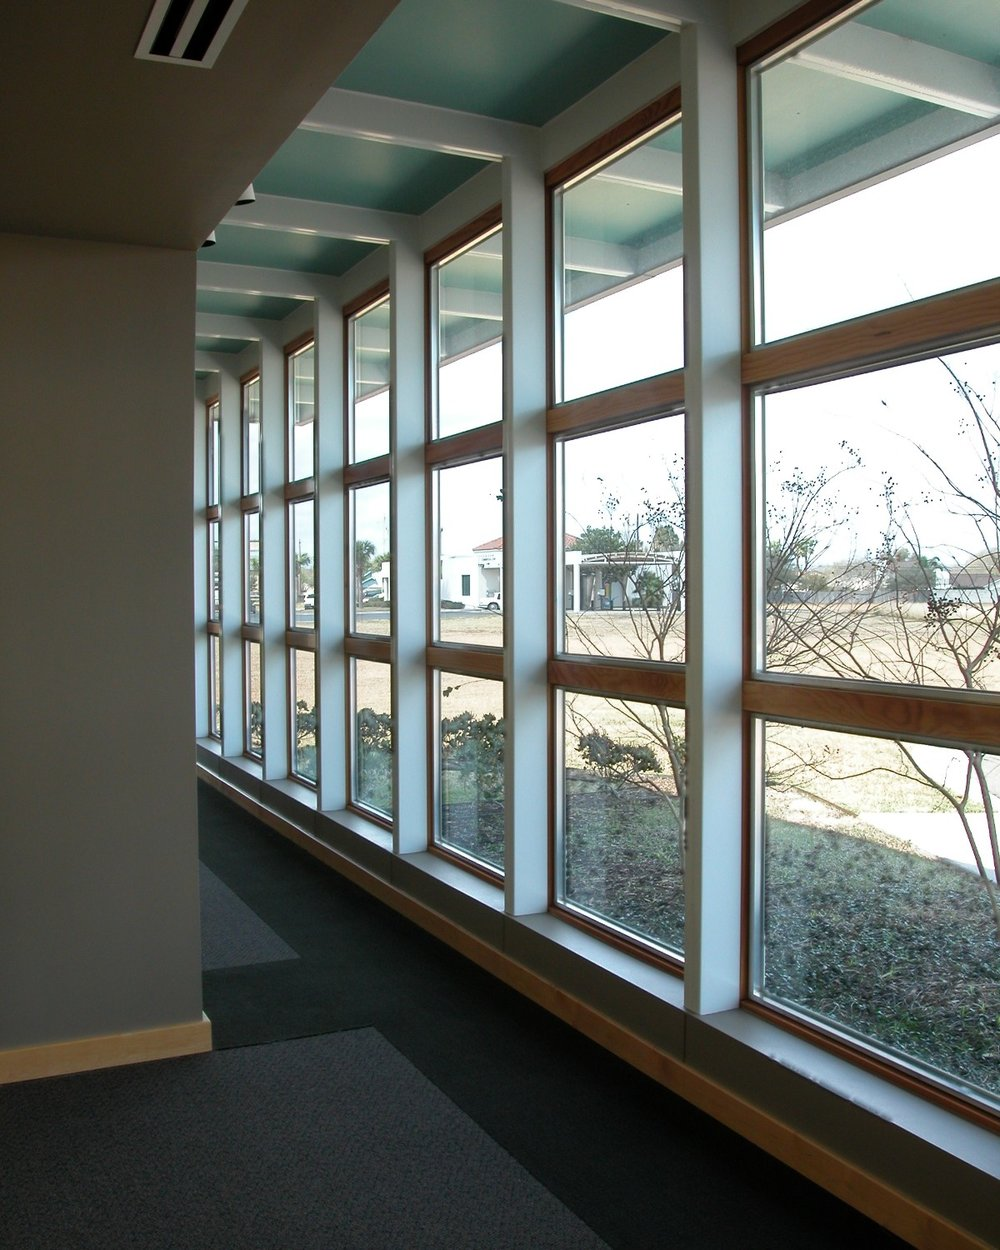 gouverne building windows.jpg